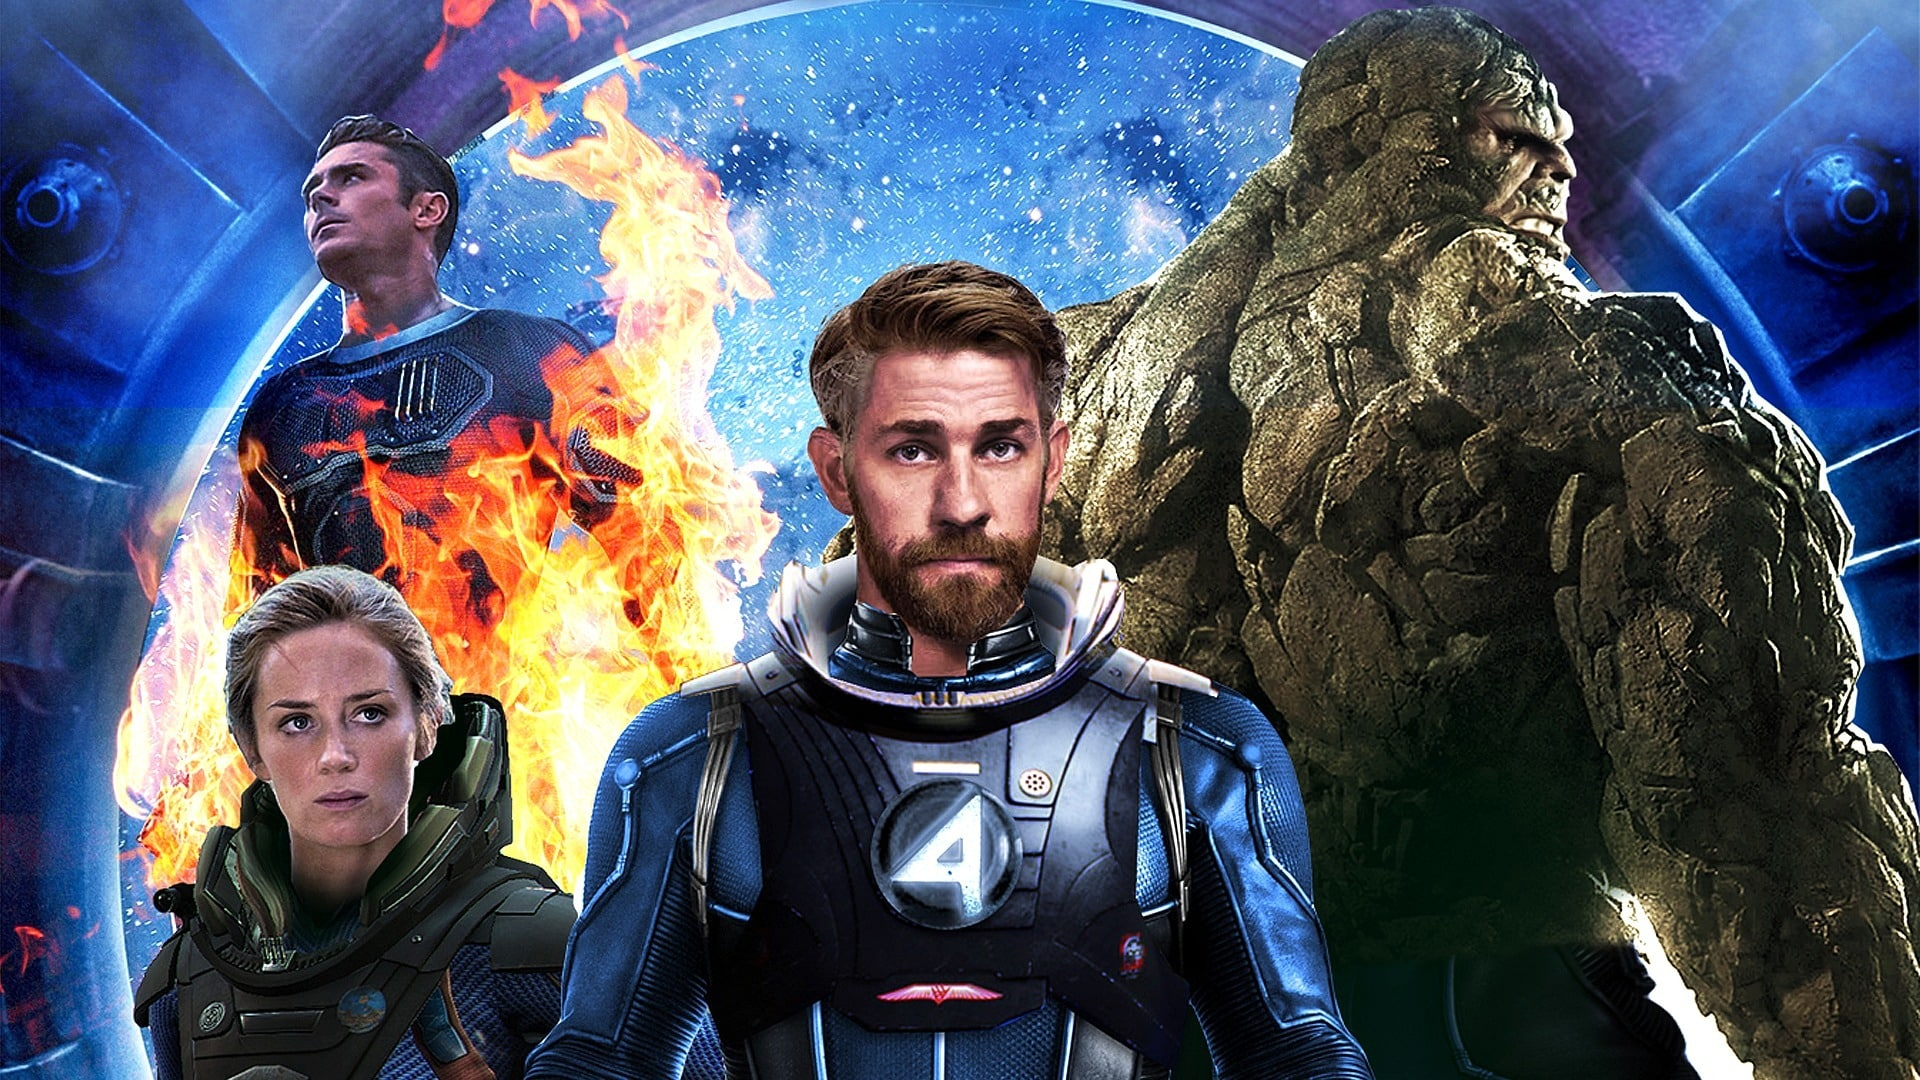 Fantastická štvorka v Marvel Cinematic Universe